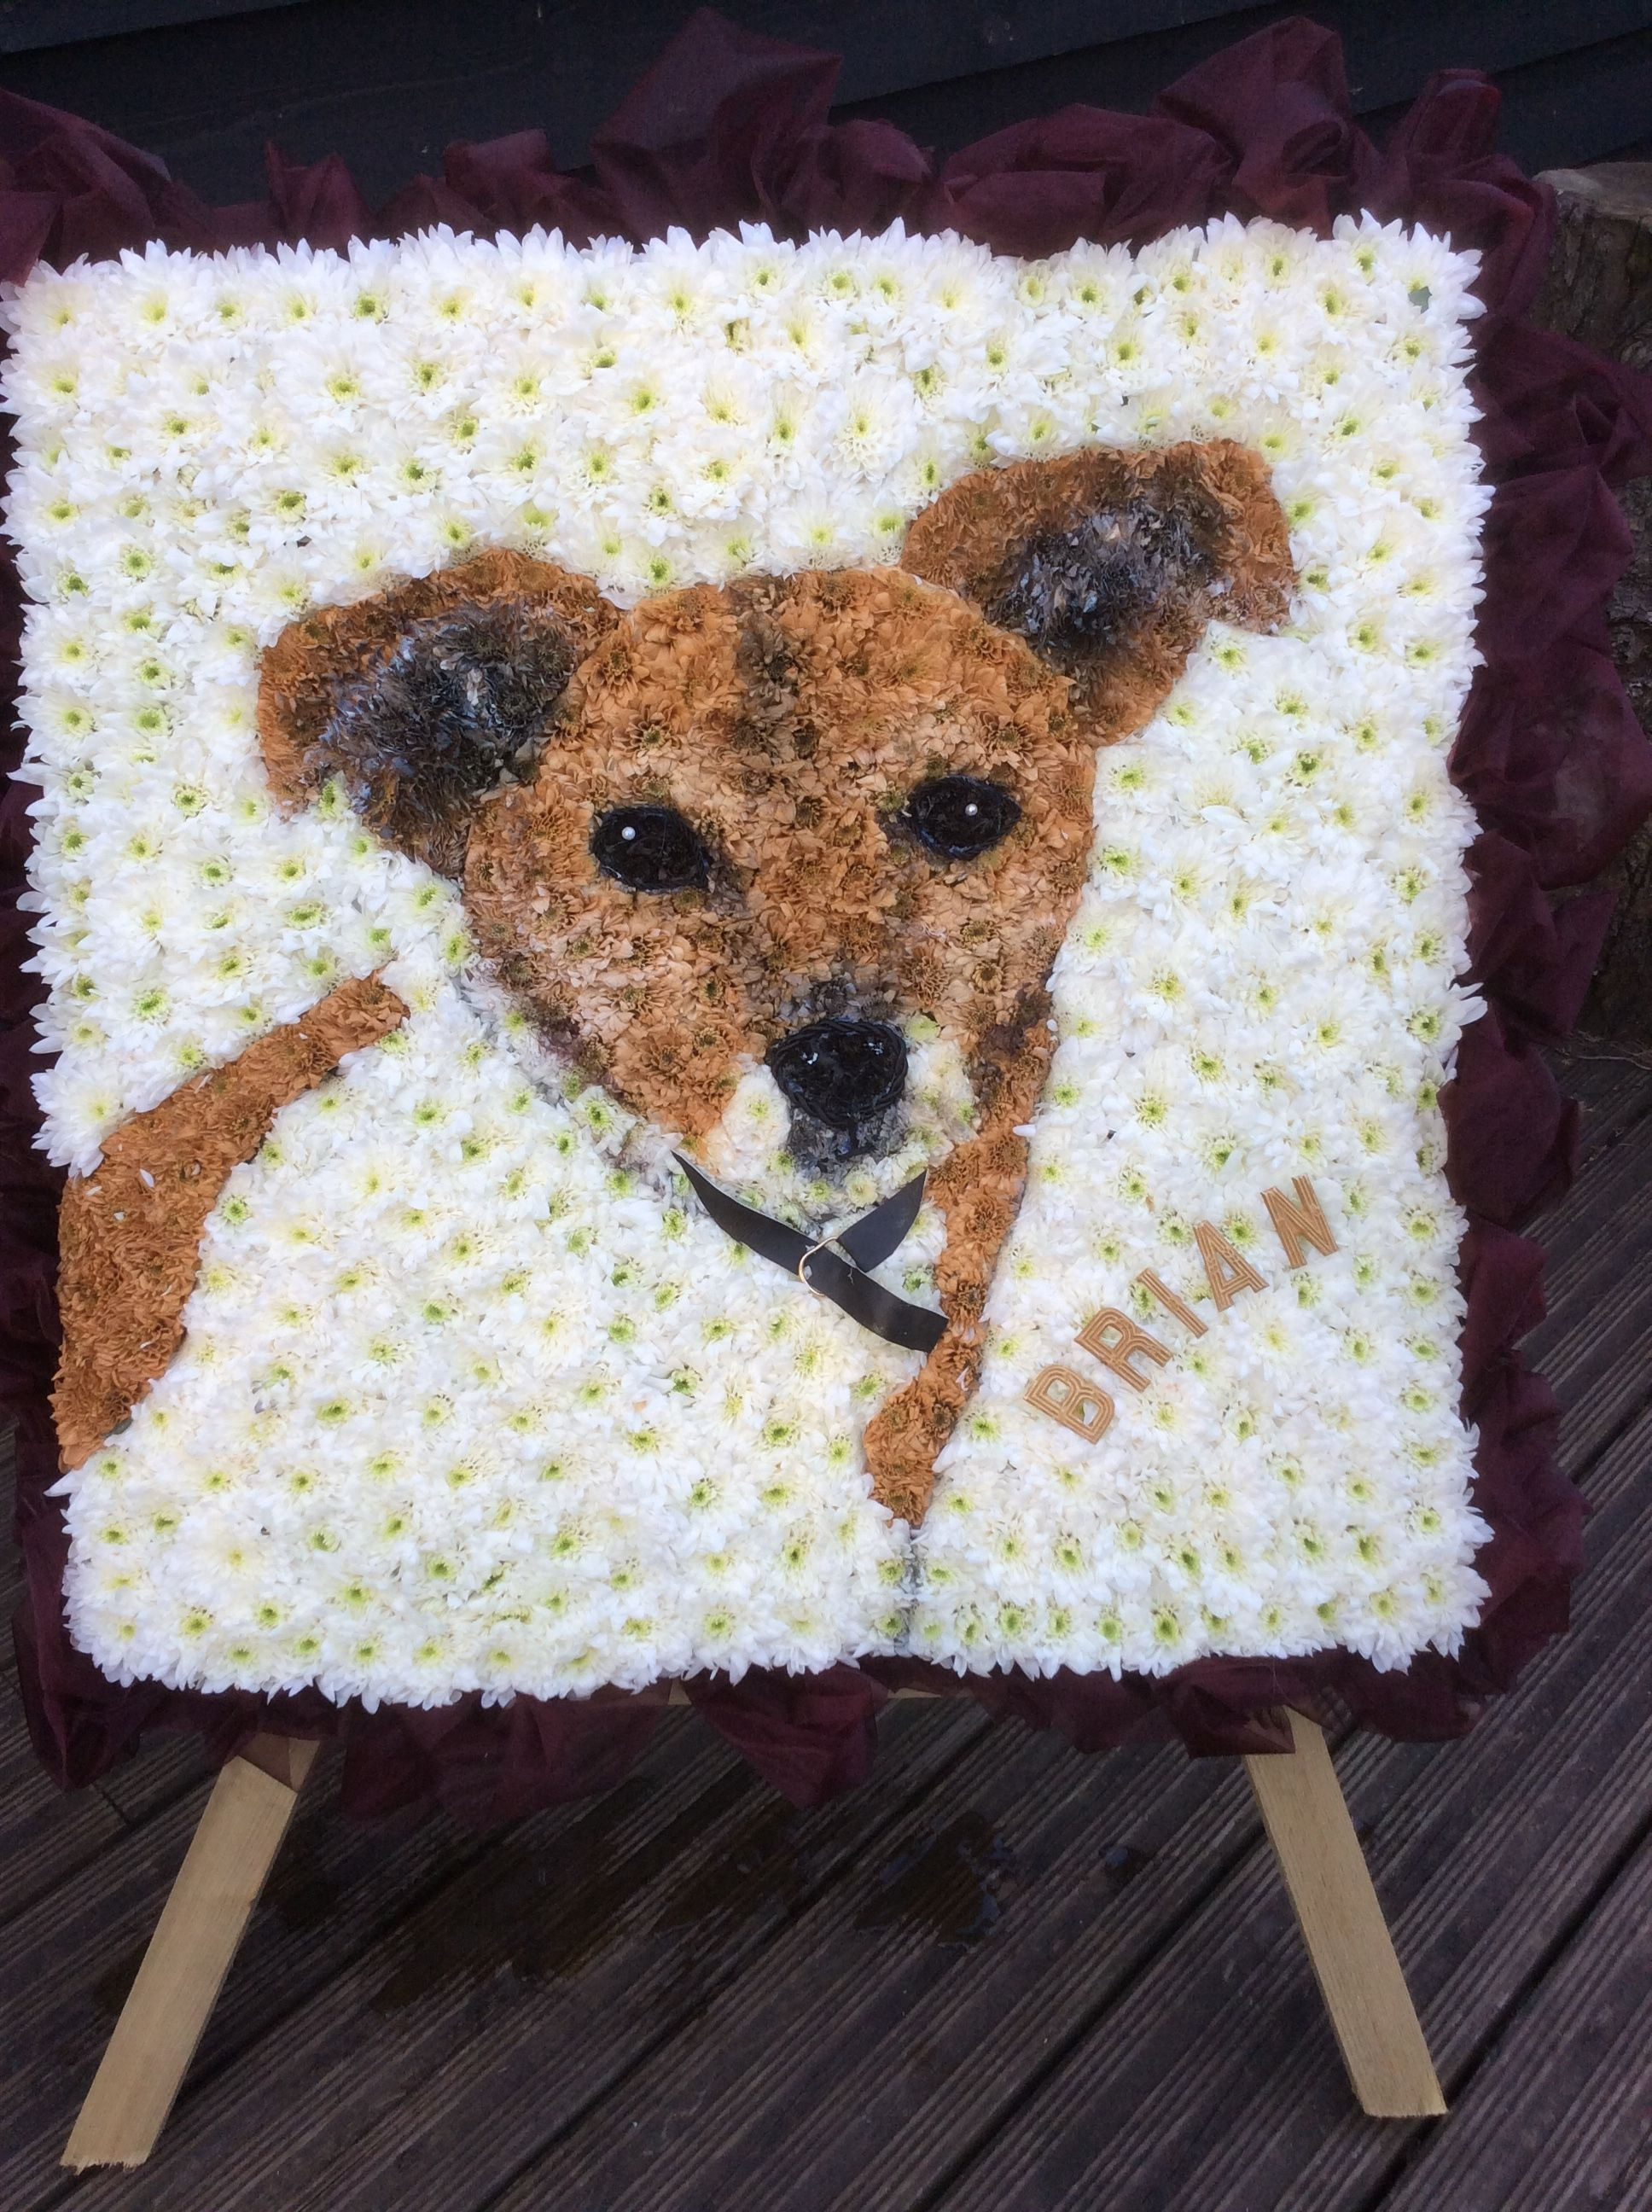 2d dog flower picture picture made of flowers funeral flower 2d dog flower picture picture made of flowers izmirmasajfo